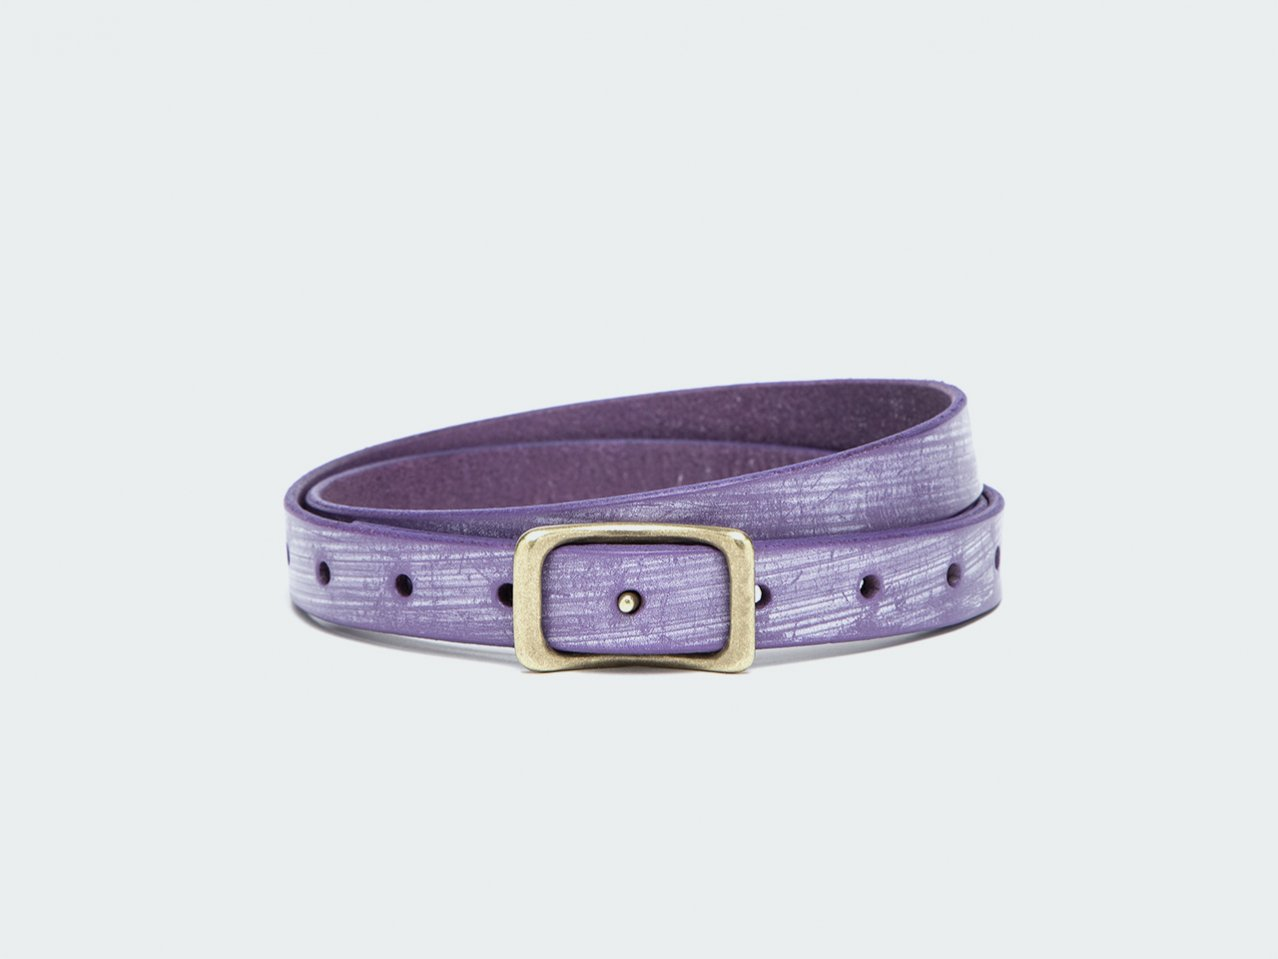 NARROW NAVEL (Bridle) 20 / PURPLE